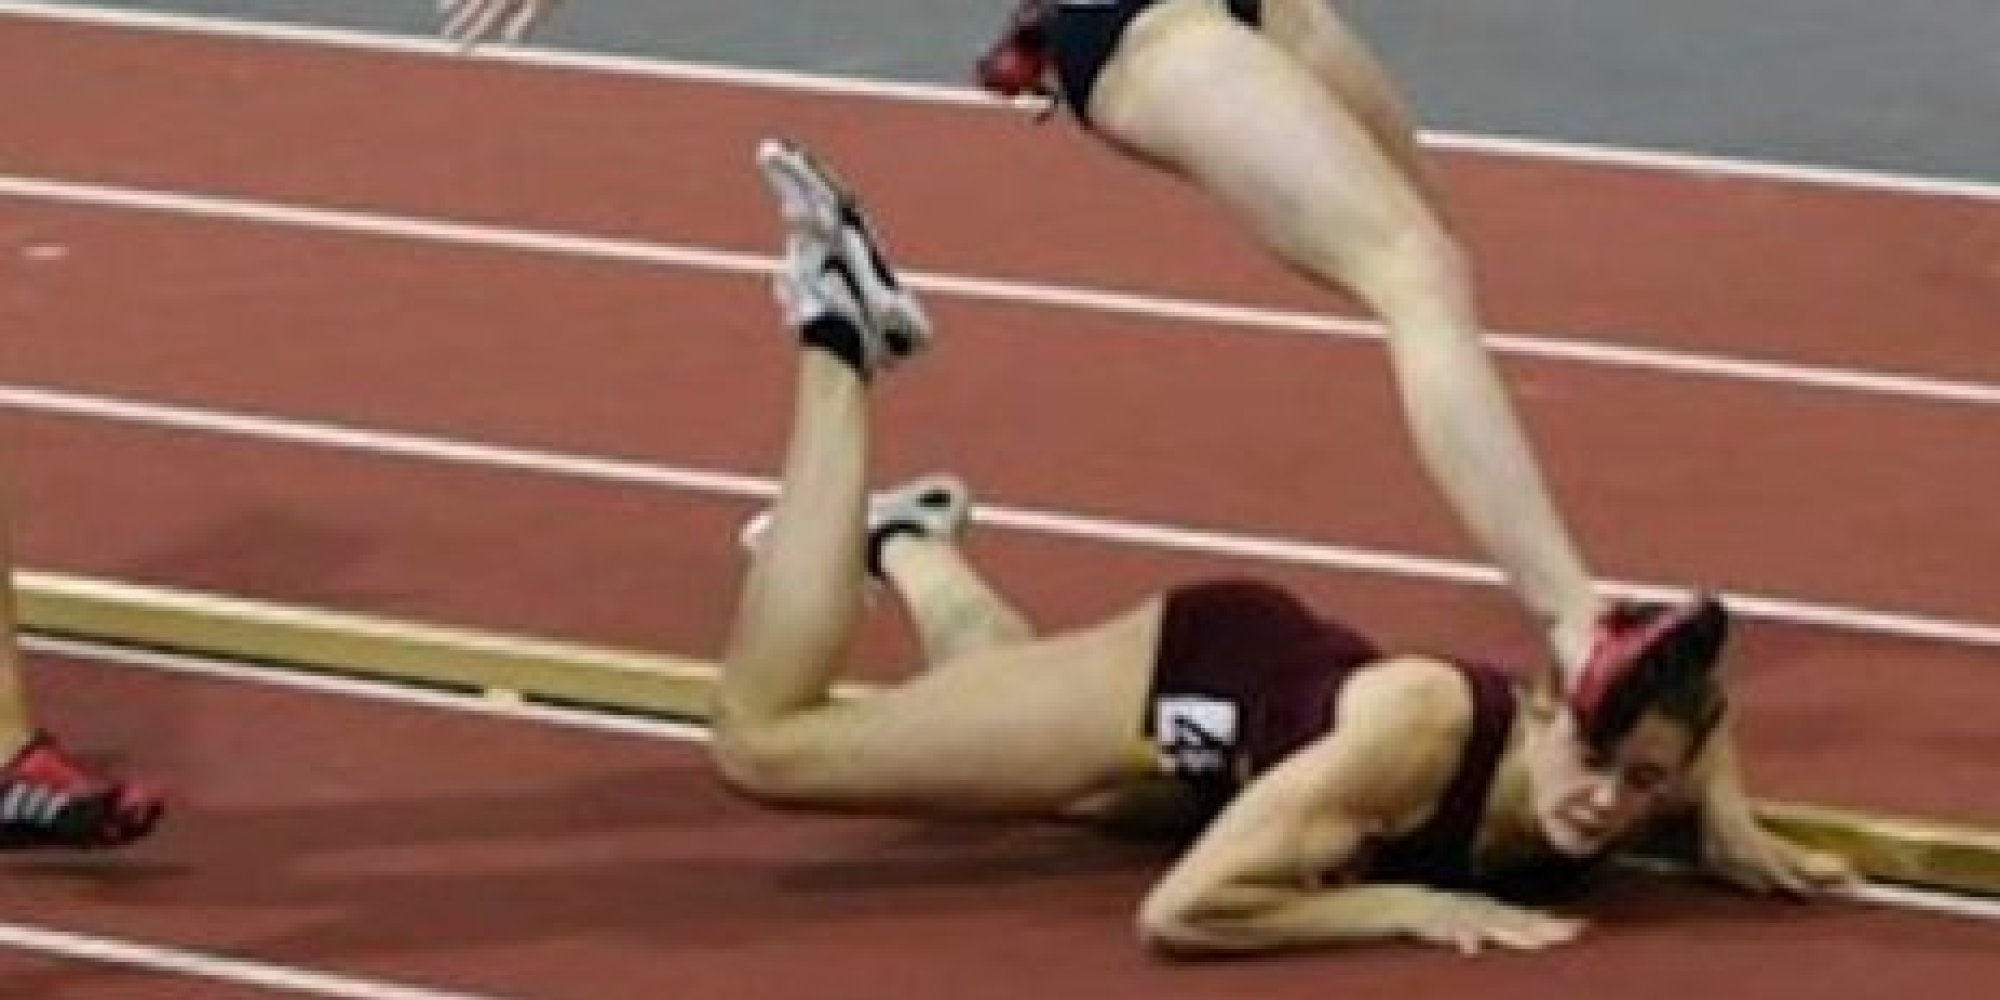 This Inspiring Runner Took A Nasty Fall, But She Didn't Stay Down ...